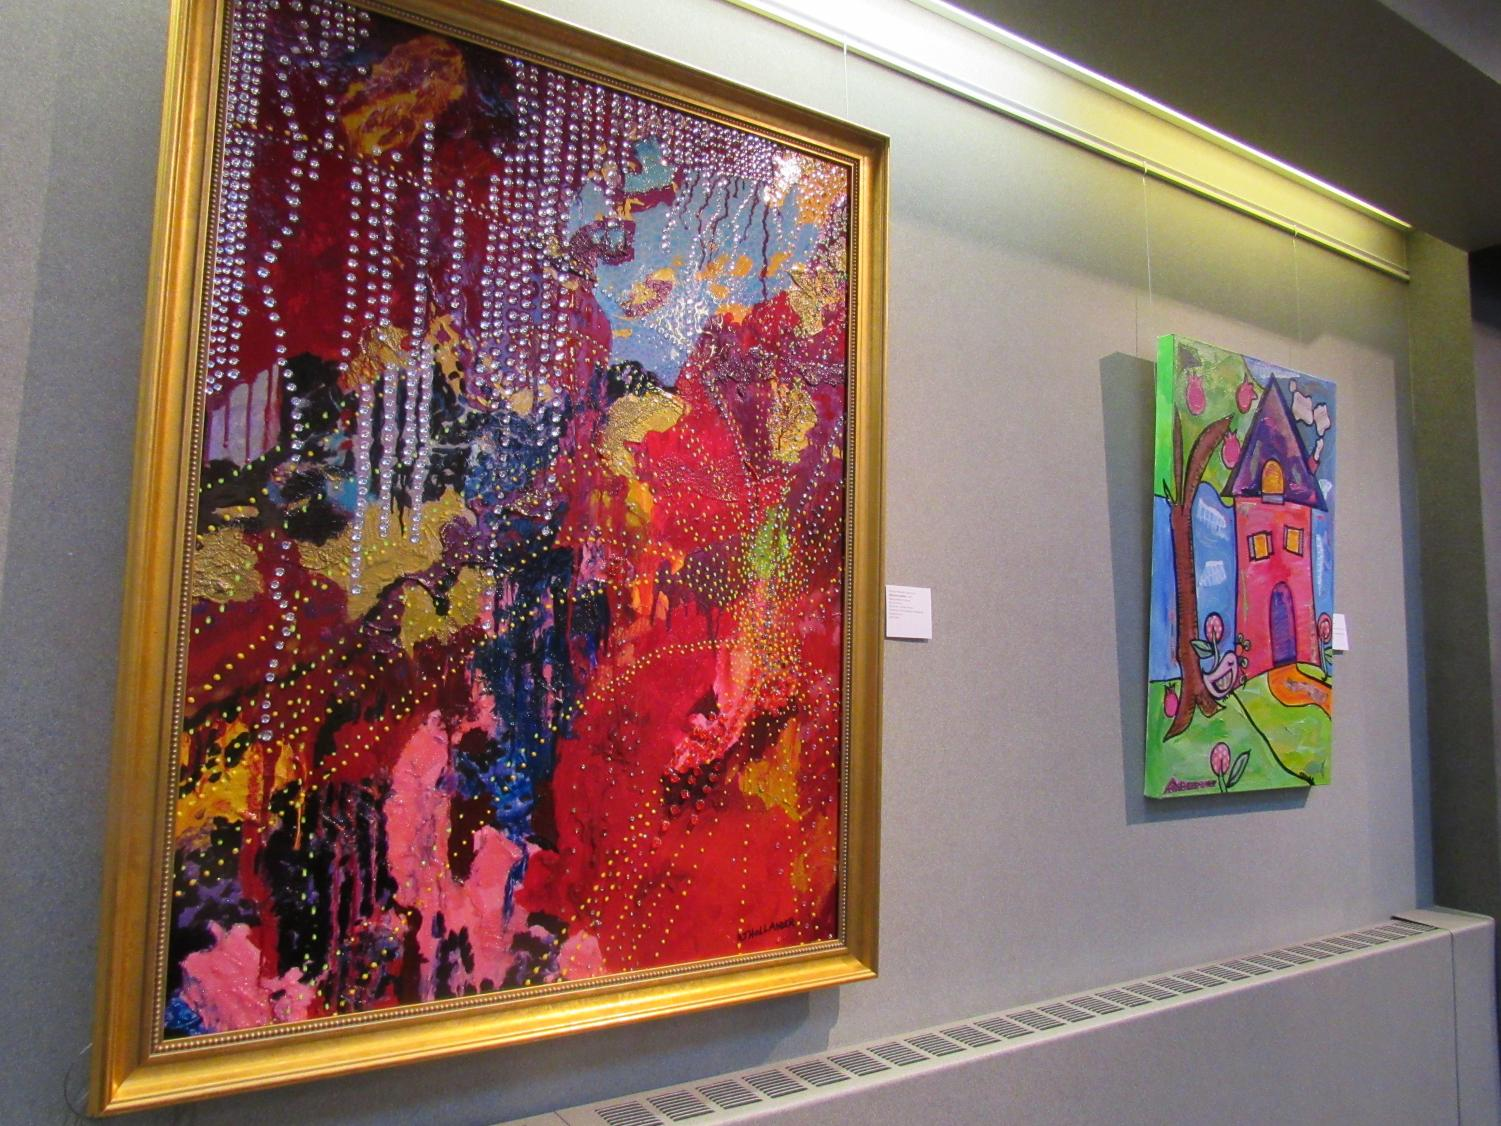 Diamond Jubilee, left, painted by Altoona site Museum Coordinator Barbara Hollander, is one of 30 works on display at the Pasquerilla Performing Arts Center.